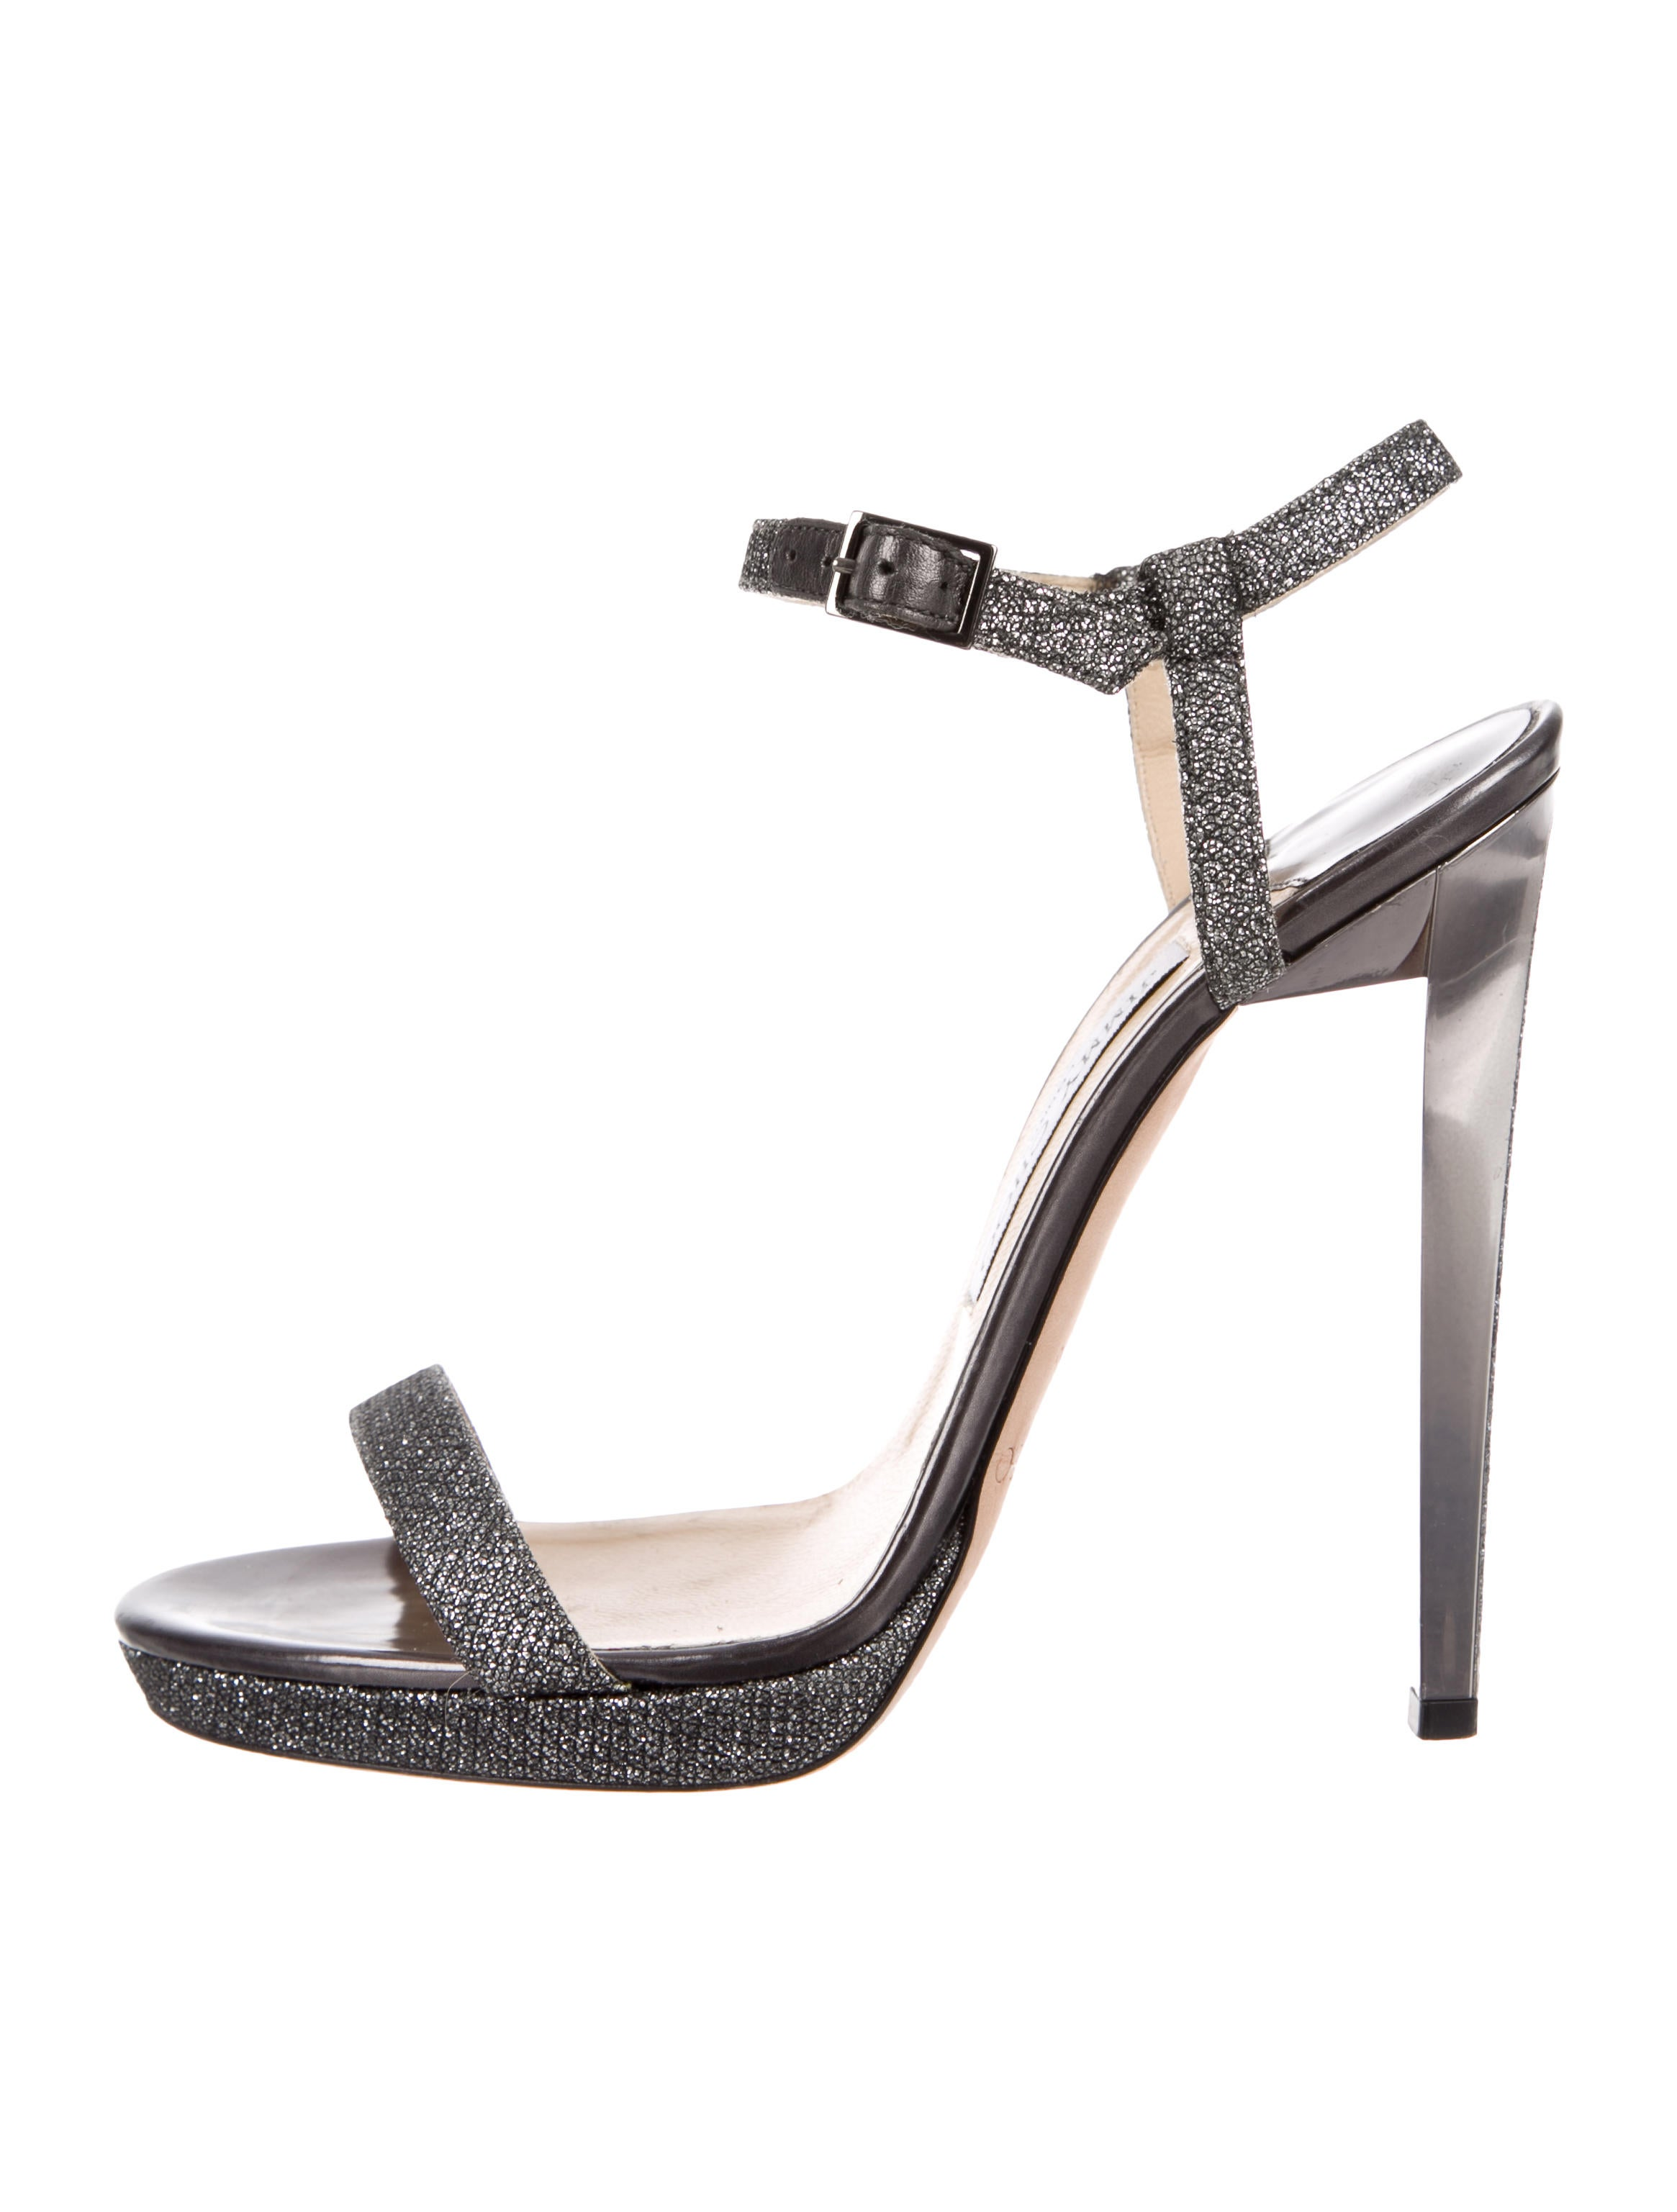 Jimmy Choo Glitter Ankle Strap Sandals clearance outlet free shipping how much huge surprise online 49xgQLq8